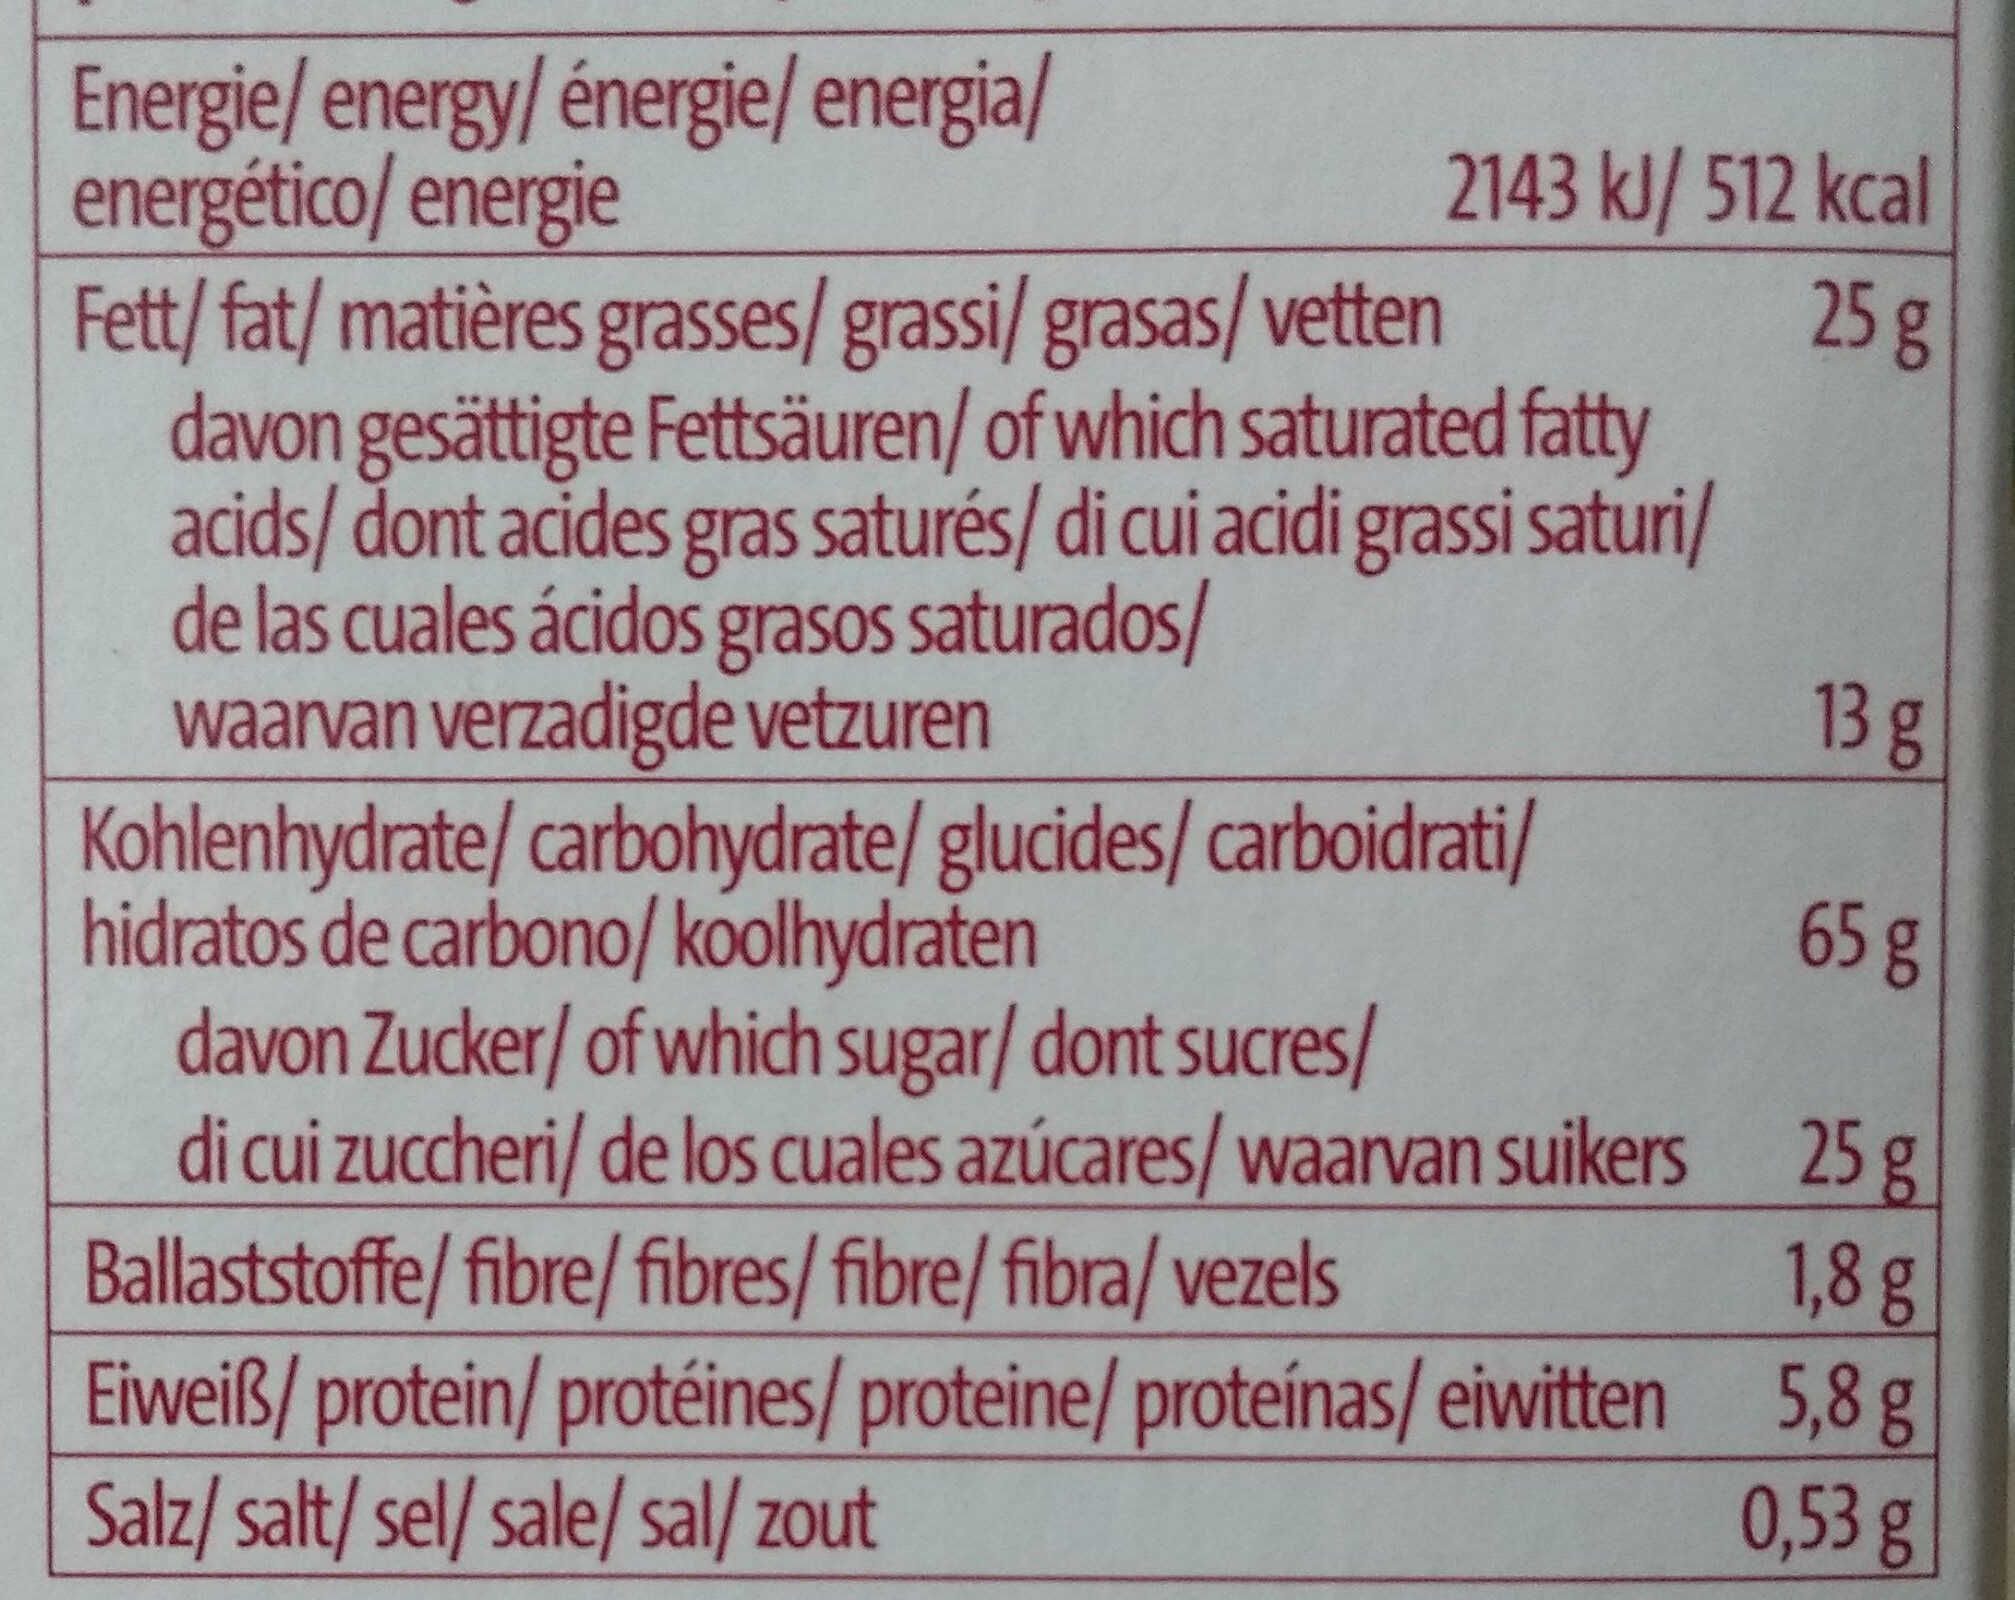 Torteletts - Nutrition facts